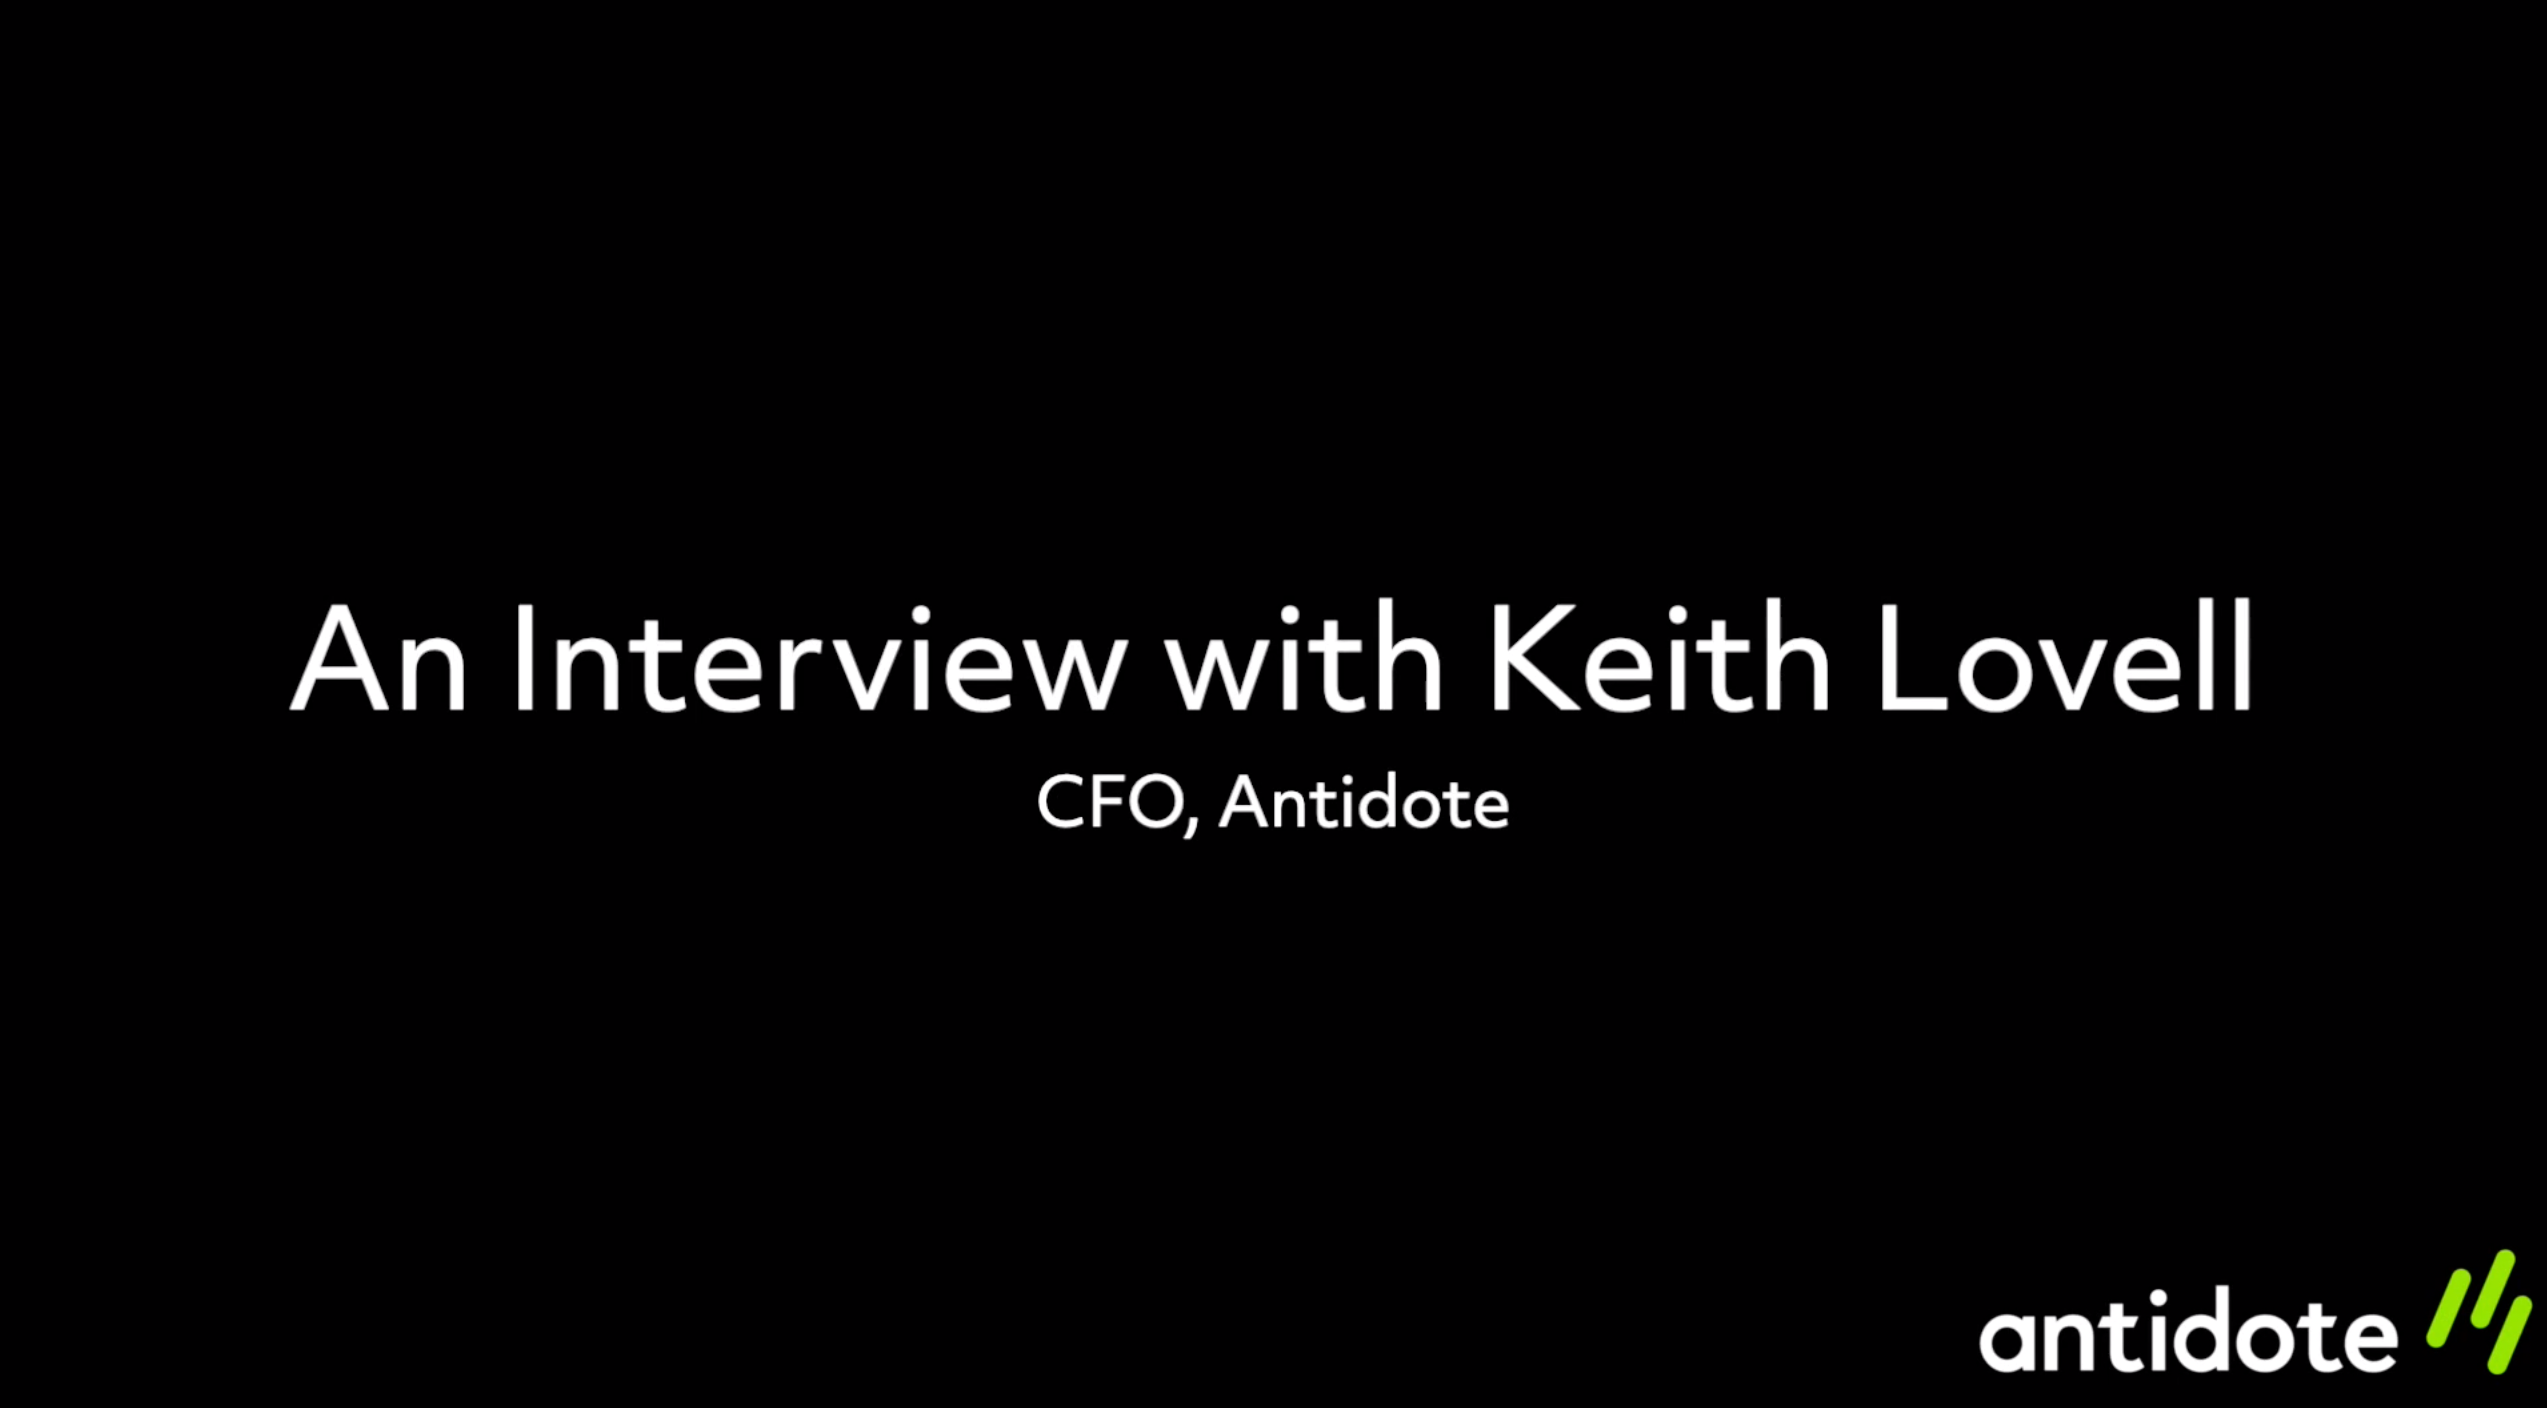 Interview with Keith - Edited v2